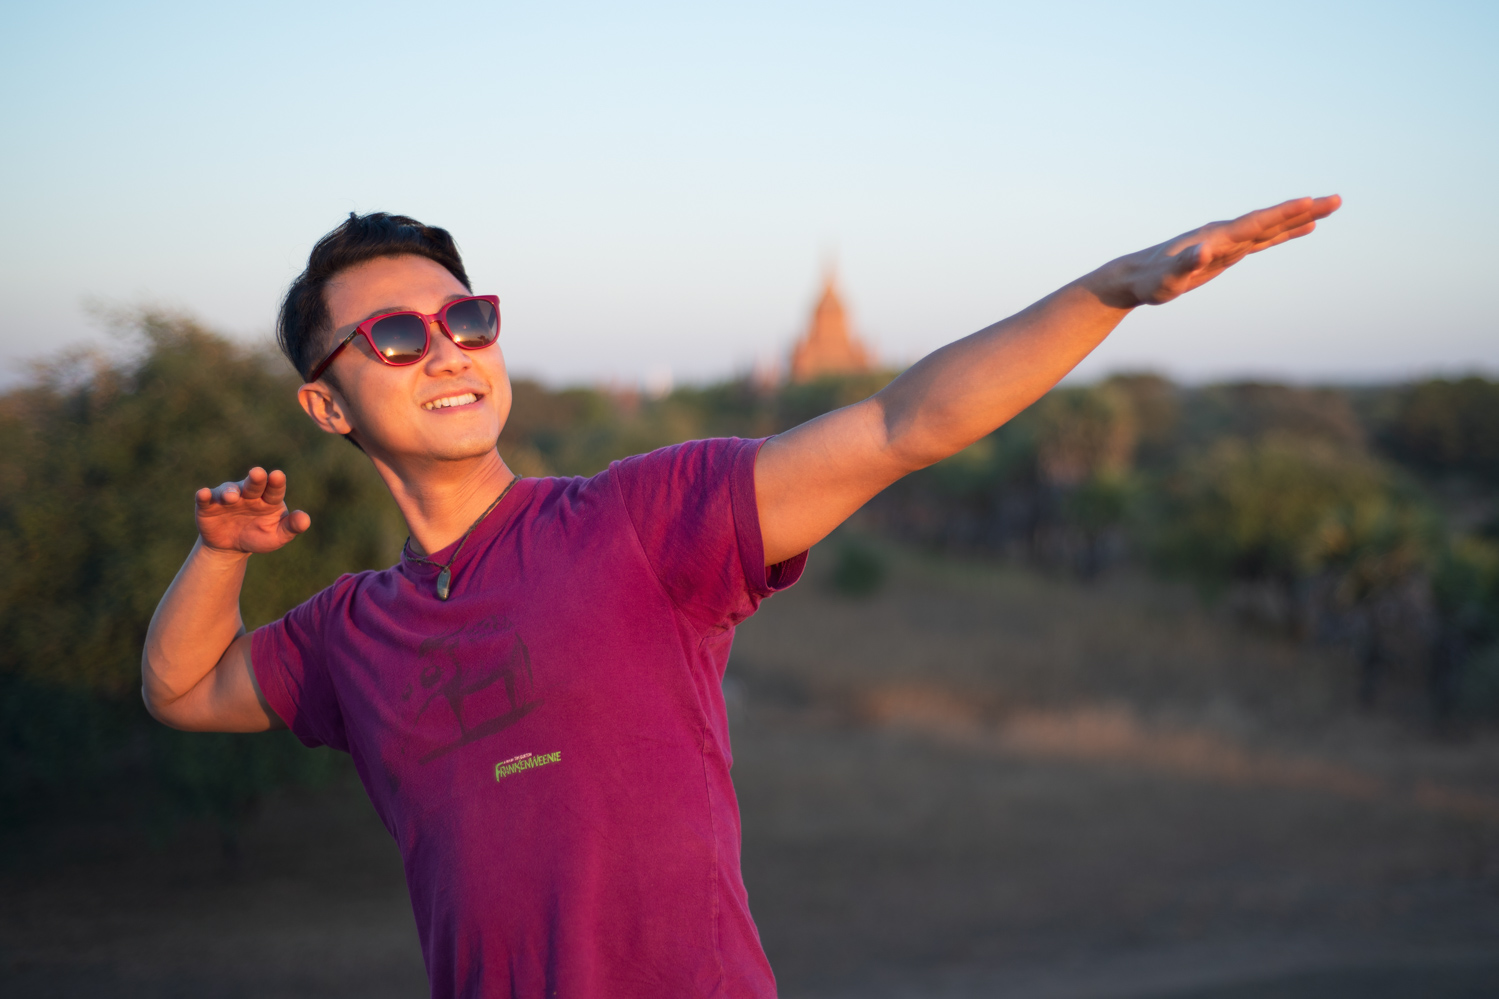 Matthew Seow signature pose in Bagan sunset with Dhammayan Gyi Temple in the background.